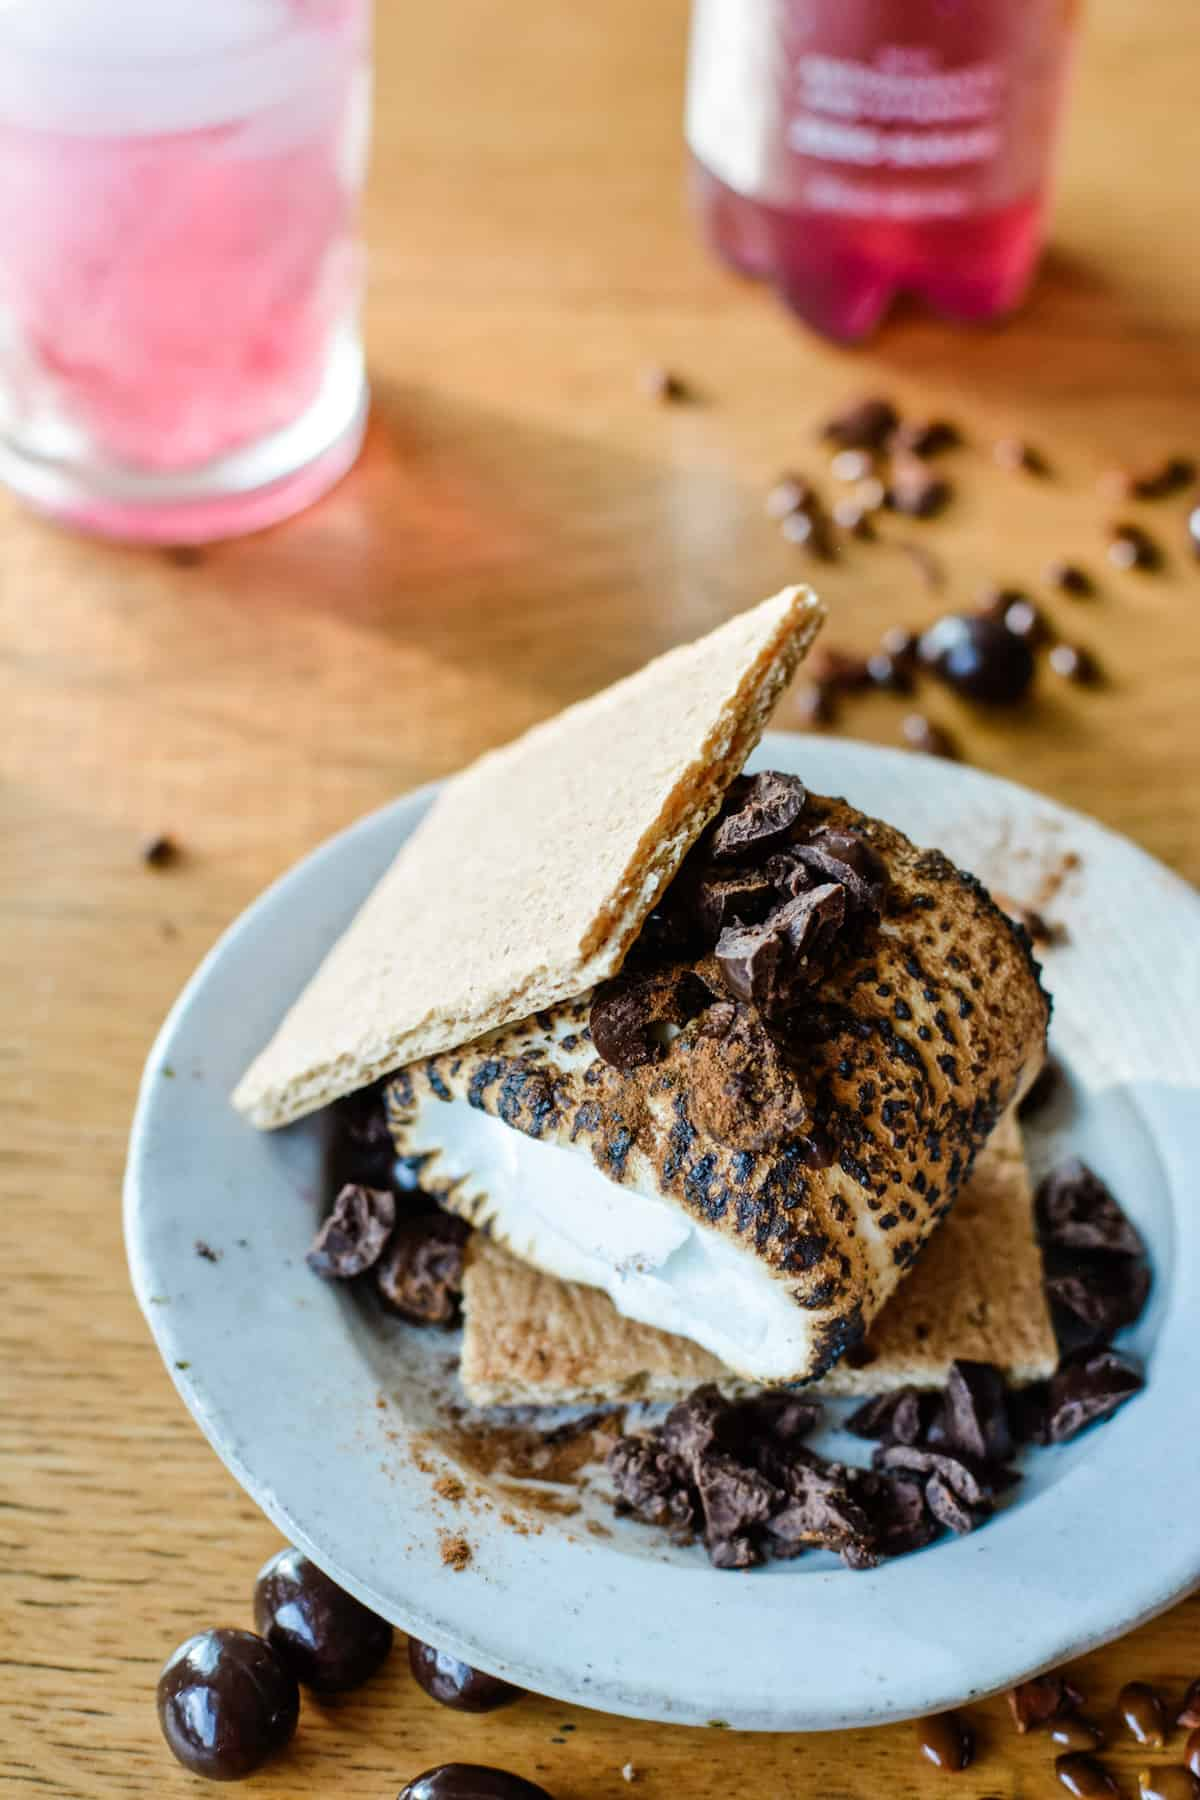 A s'mores dessert topped with chopped chocolate covered espresso beans and ground cinnamon sitting on a small plate on a wood table.